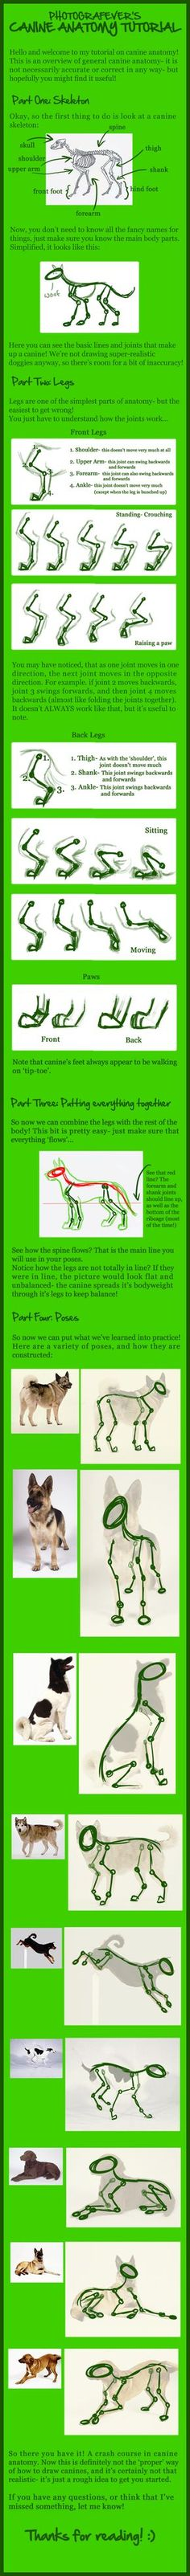 GIANT CANINE ANATOMY TUTORIAL by *photografever on deviantART